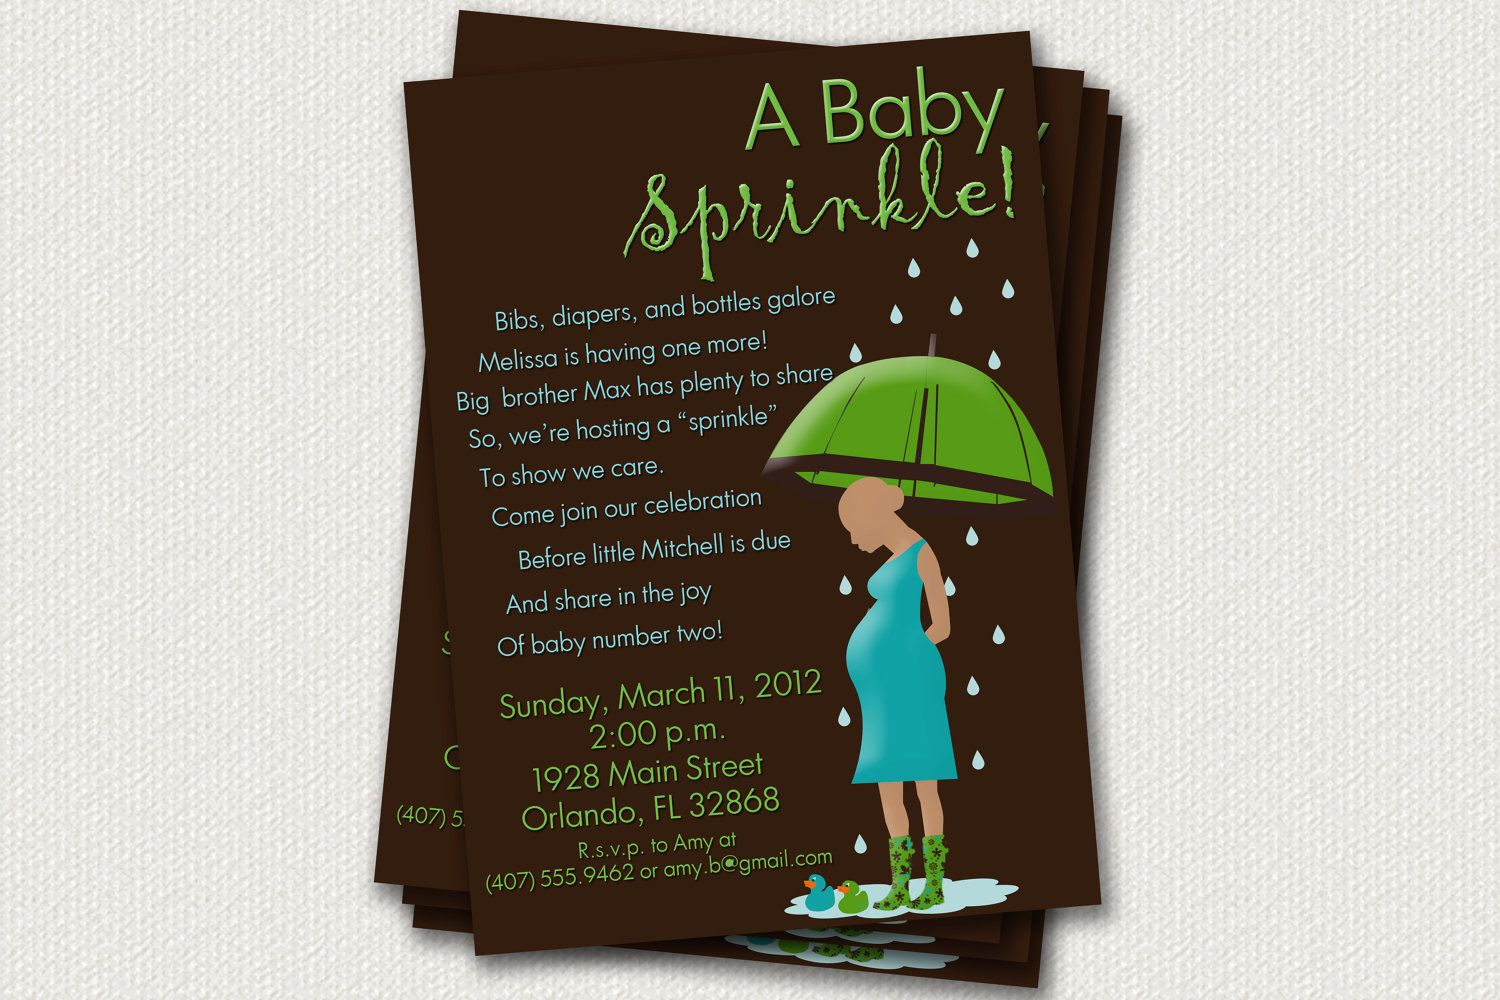 baby shower invitation wording for bringing diapers%0A Baby Sprinkle Invitations cute wording